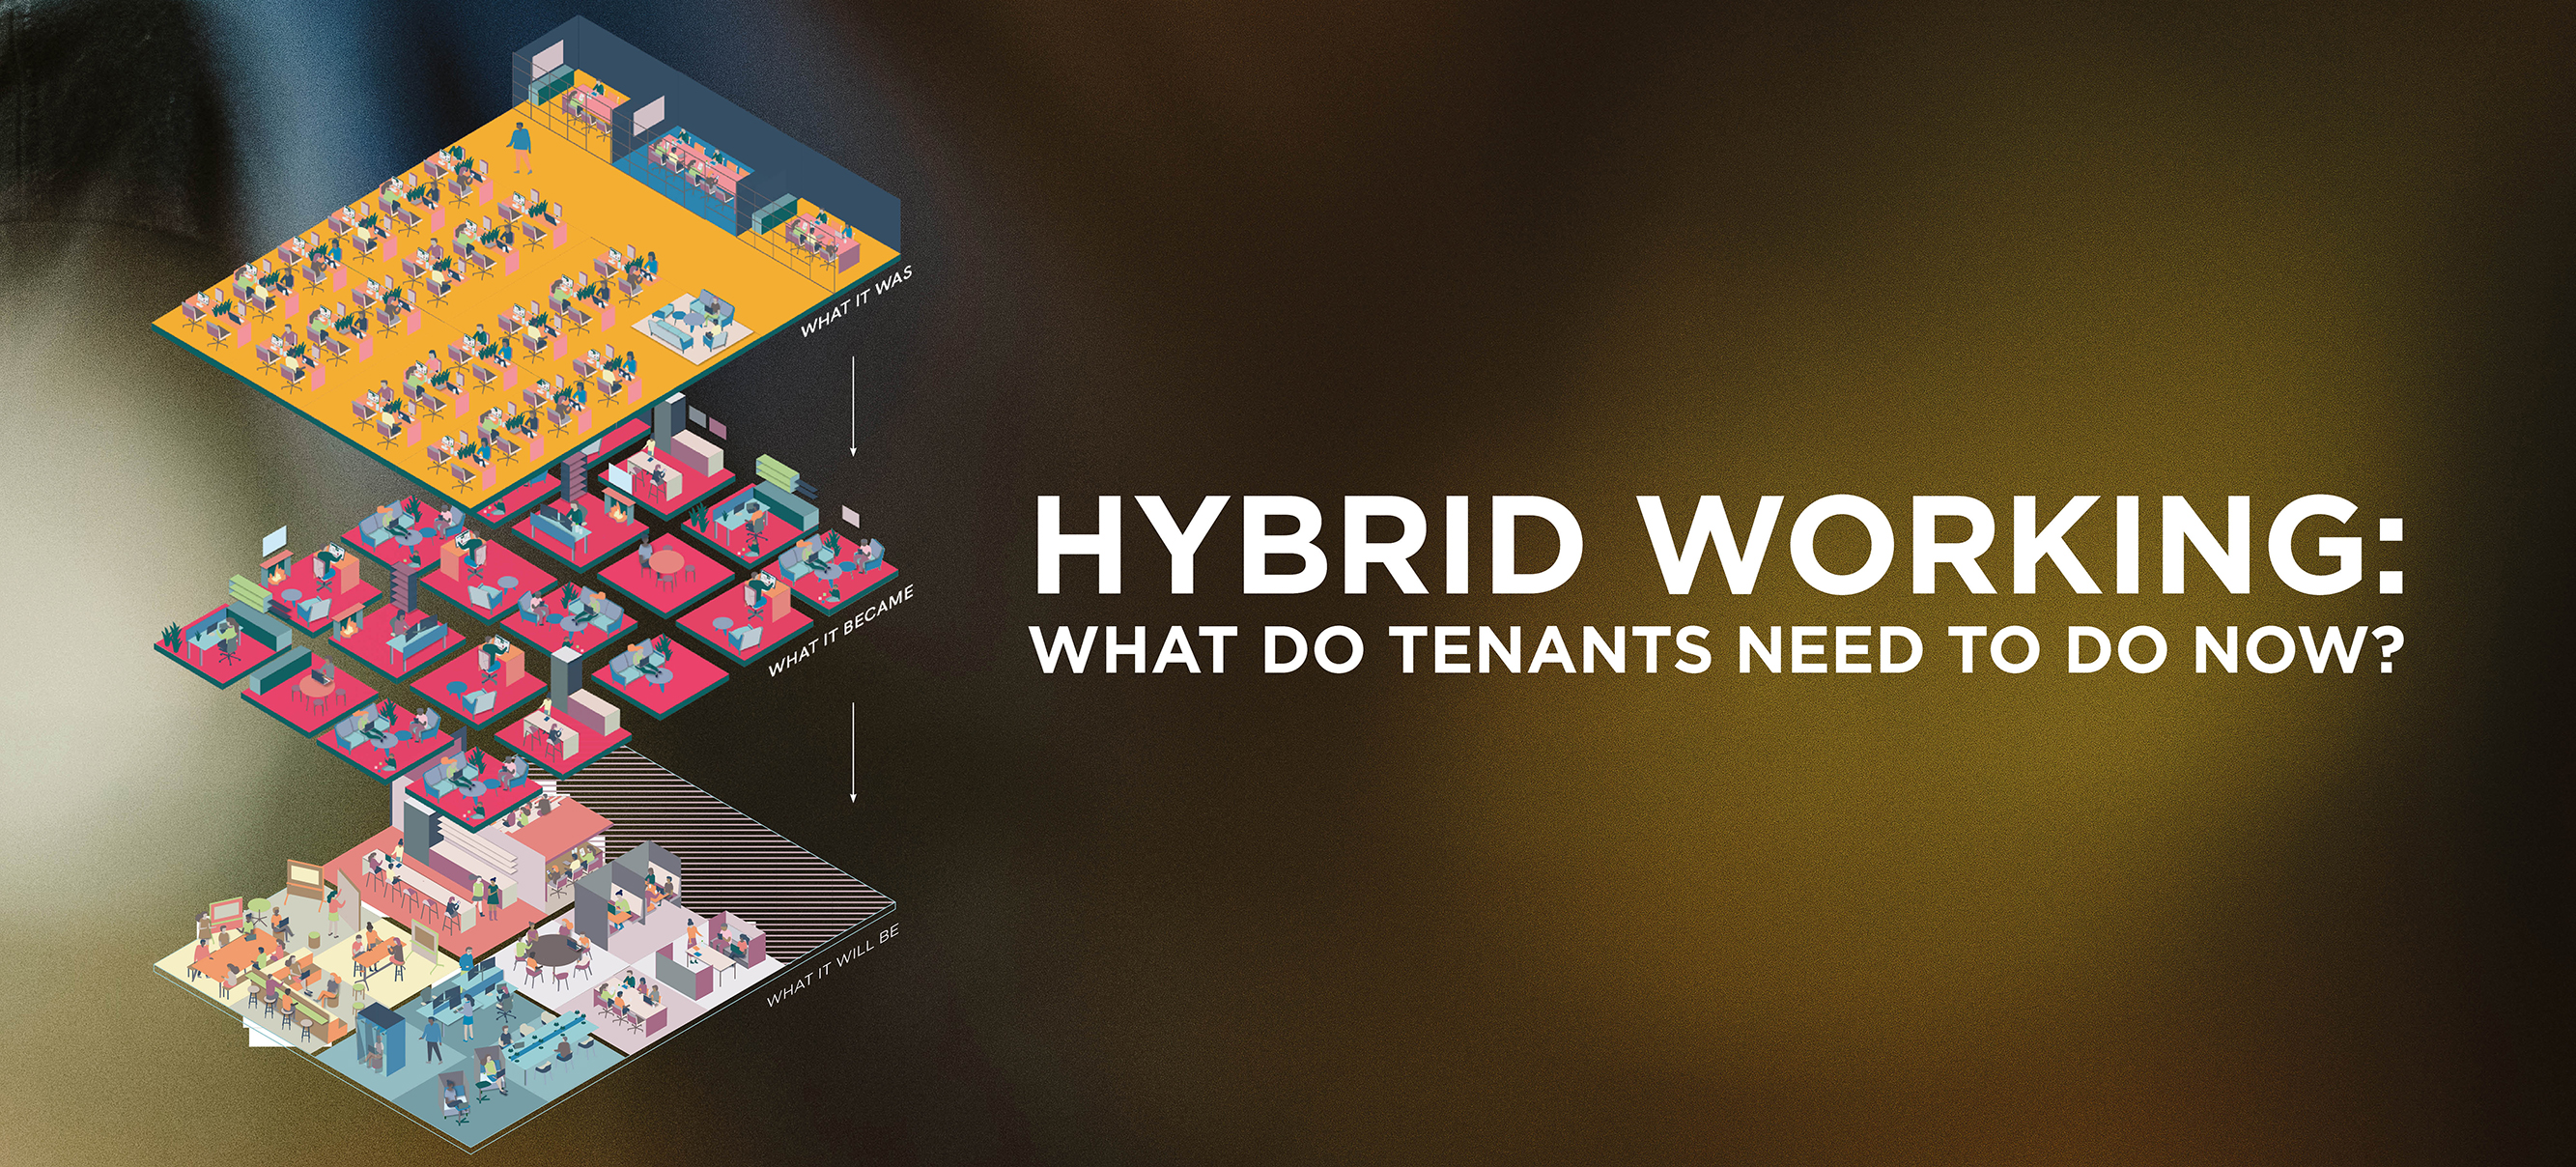 Hybrid Working. What do tenants need to do now?